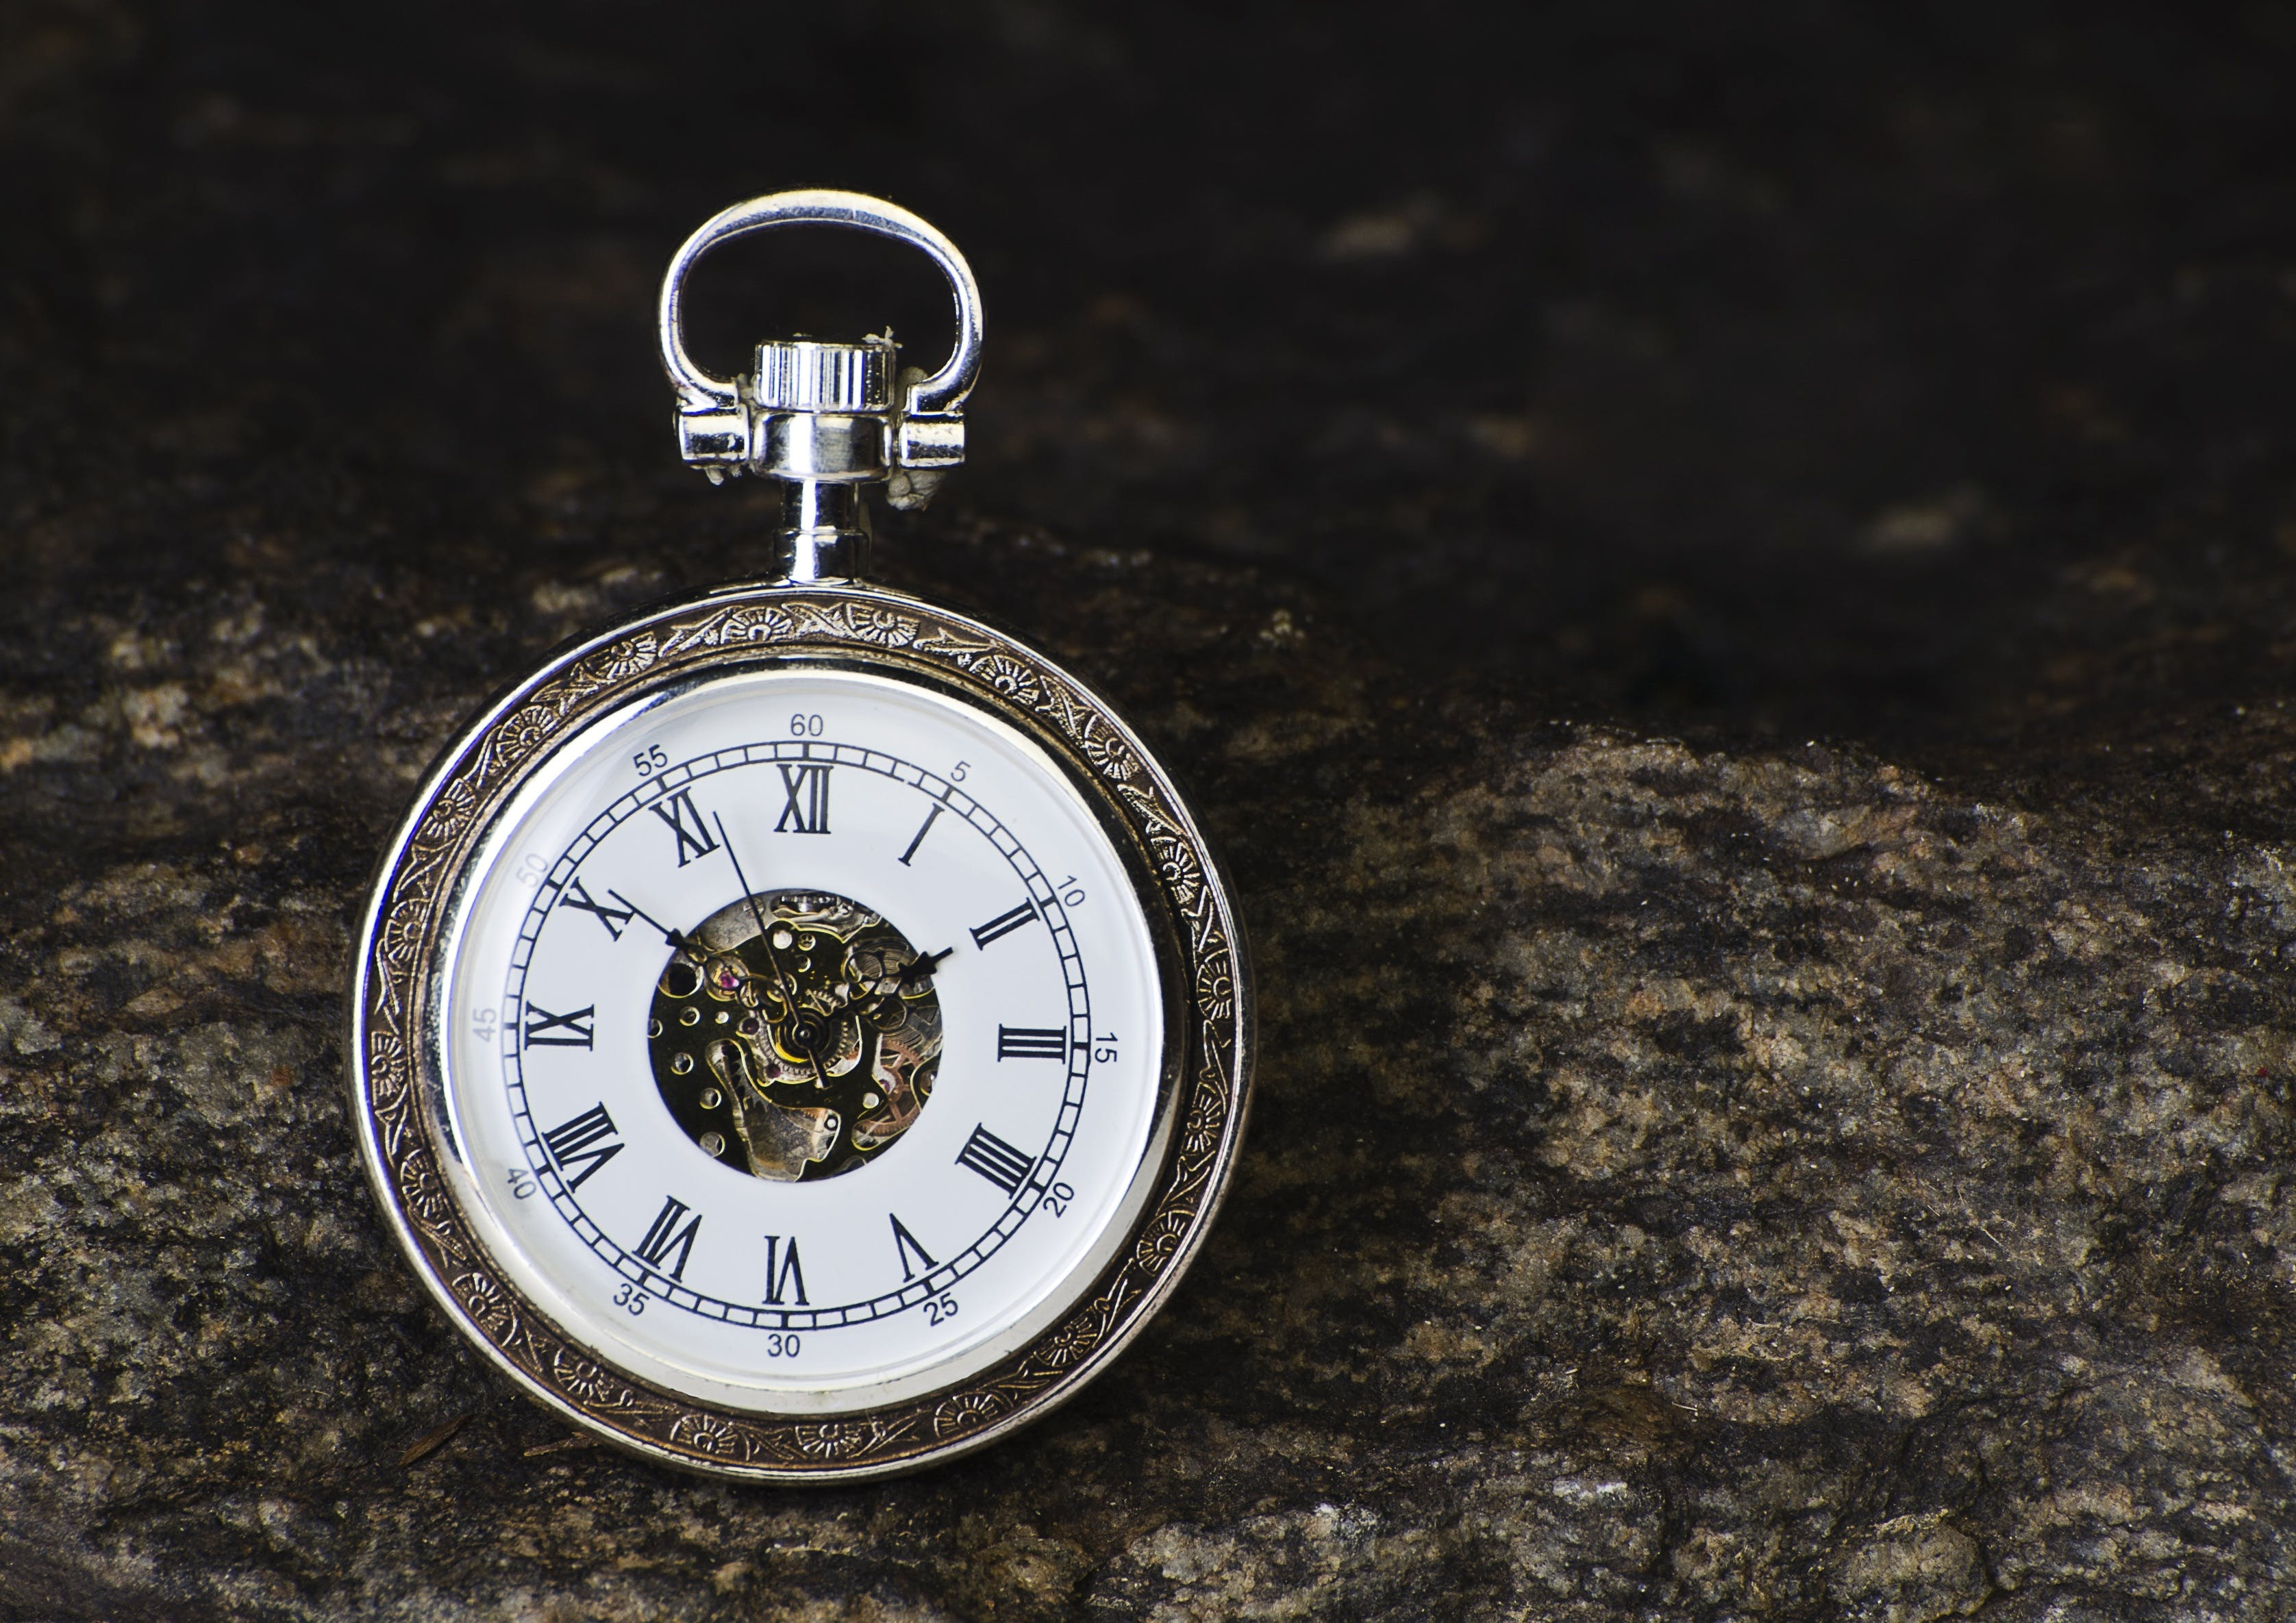 Round Gray Pocket Watch Reading 1:56 Time